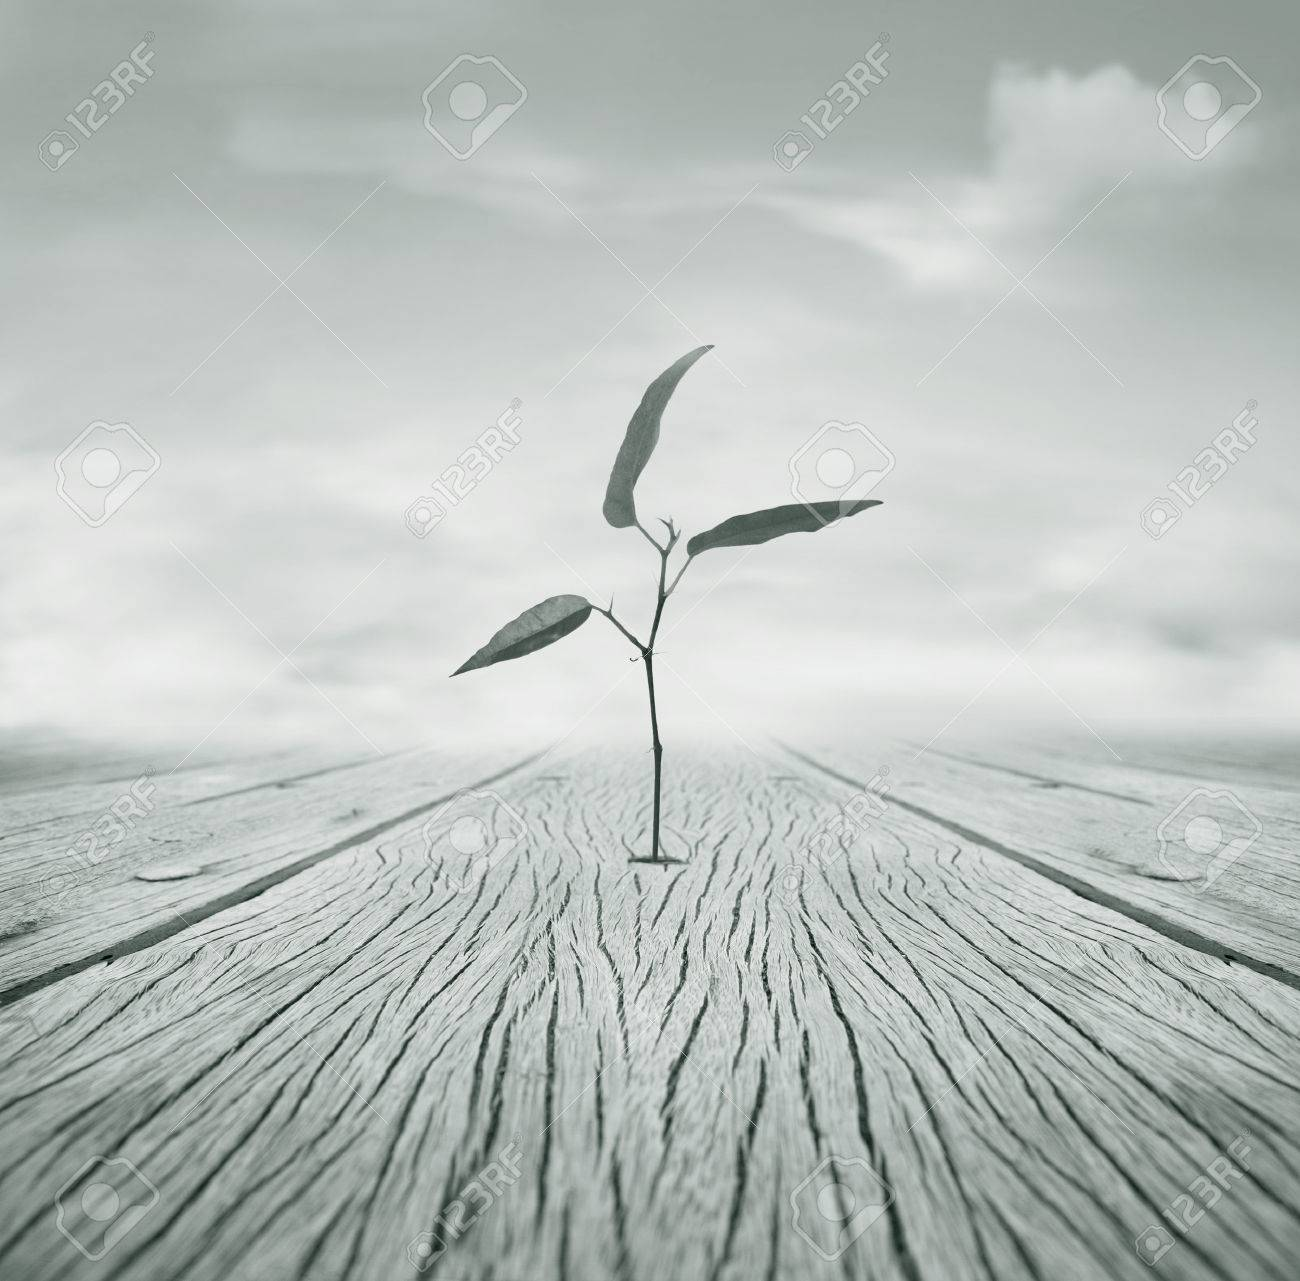 Beautiful poetic black and white image representing a little branch with leaves that grew escaping from a hole in the floor and cloudy sky in the background - 22837271